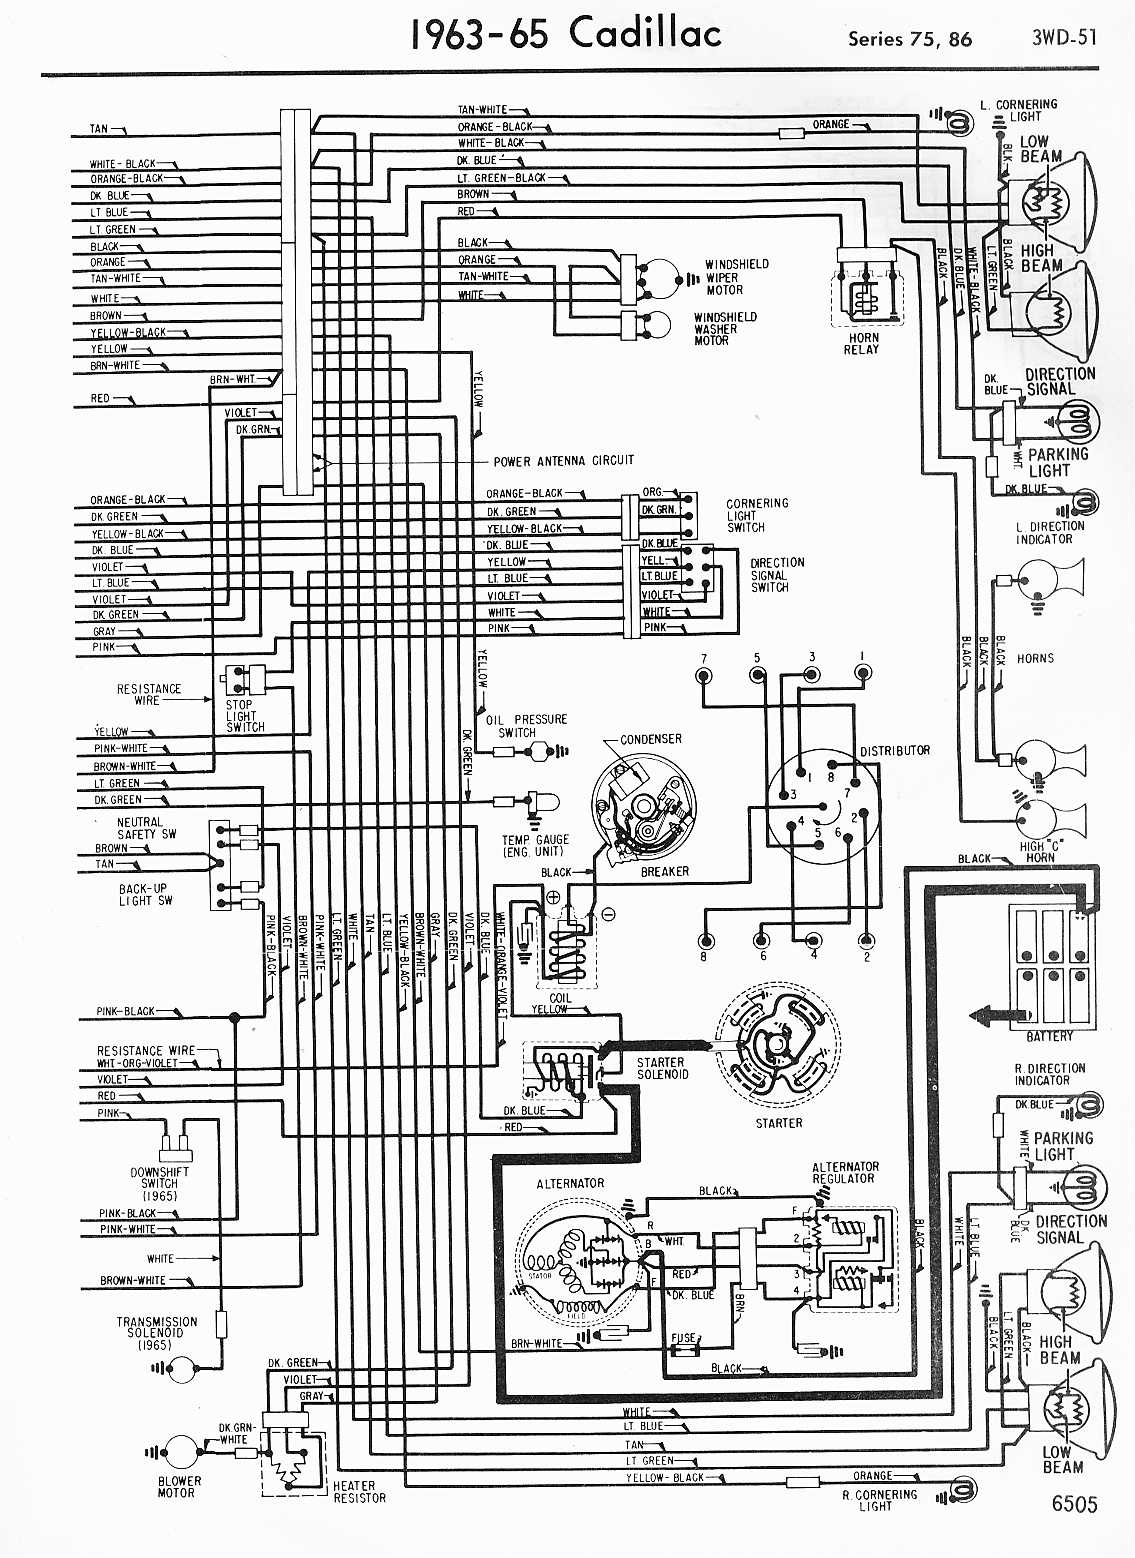 1957 Cadillac Seat Wiring Wire Center Audio Gt Amplifiers 40w Amplifier Using Tda2030 L7583 Next Diagrams 1965 Rh Oldcarmanualproject Com 1959 1953